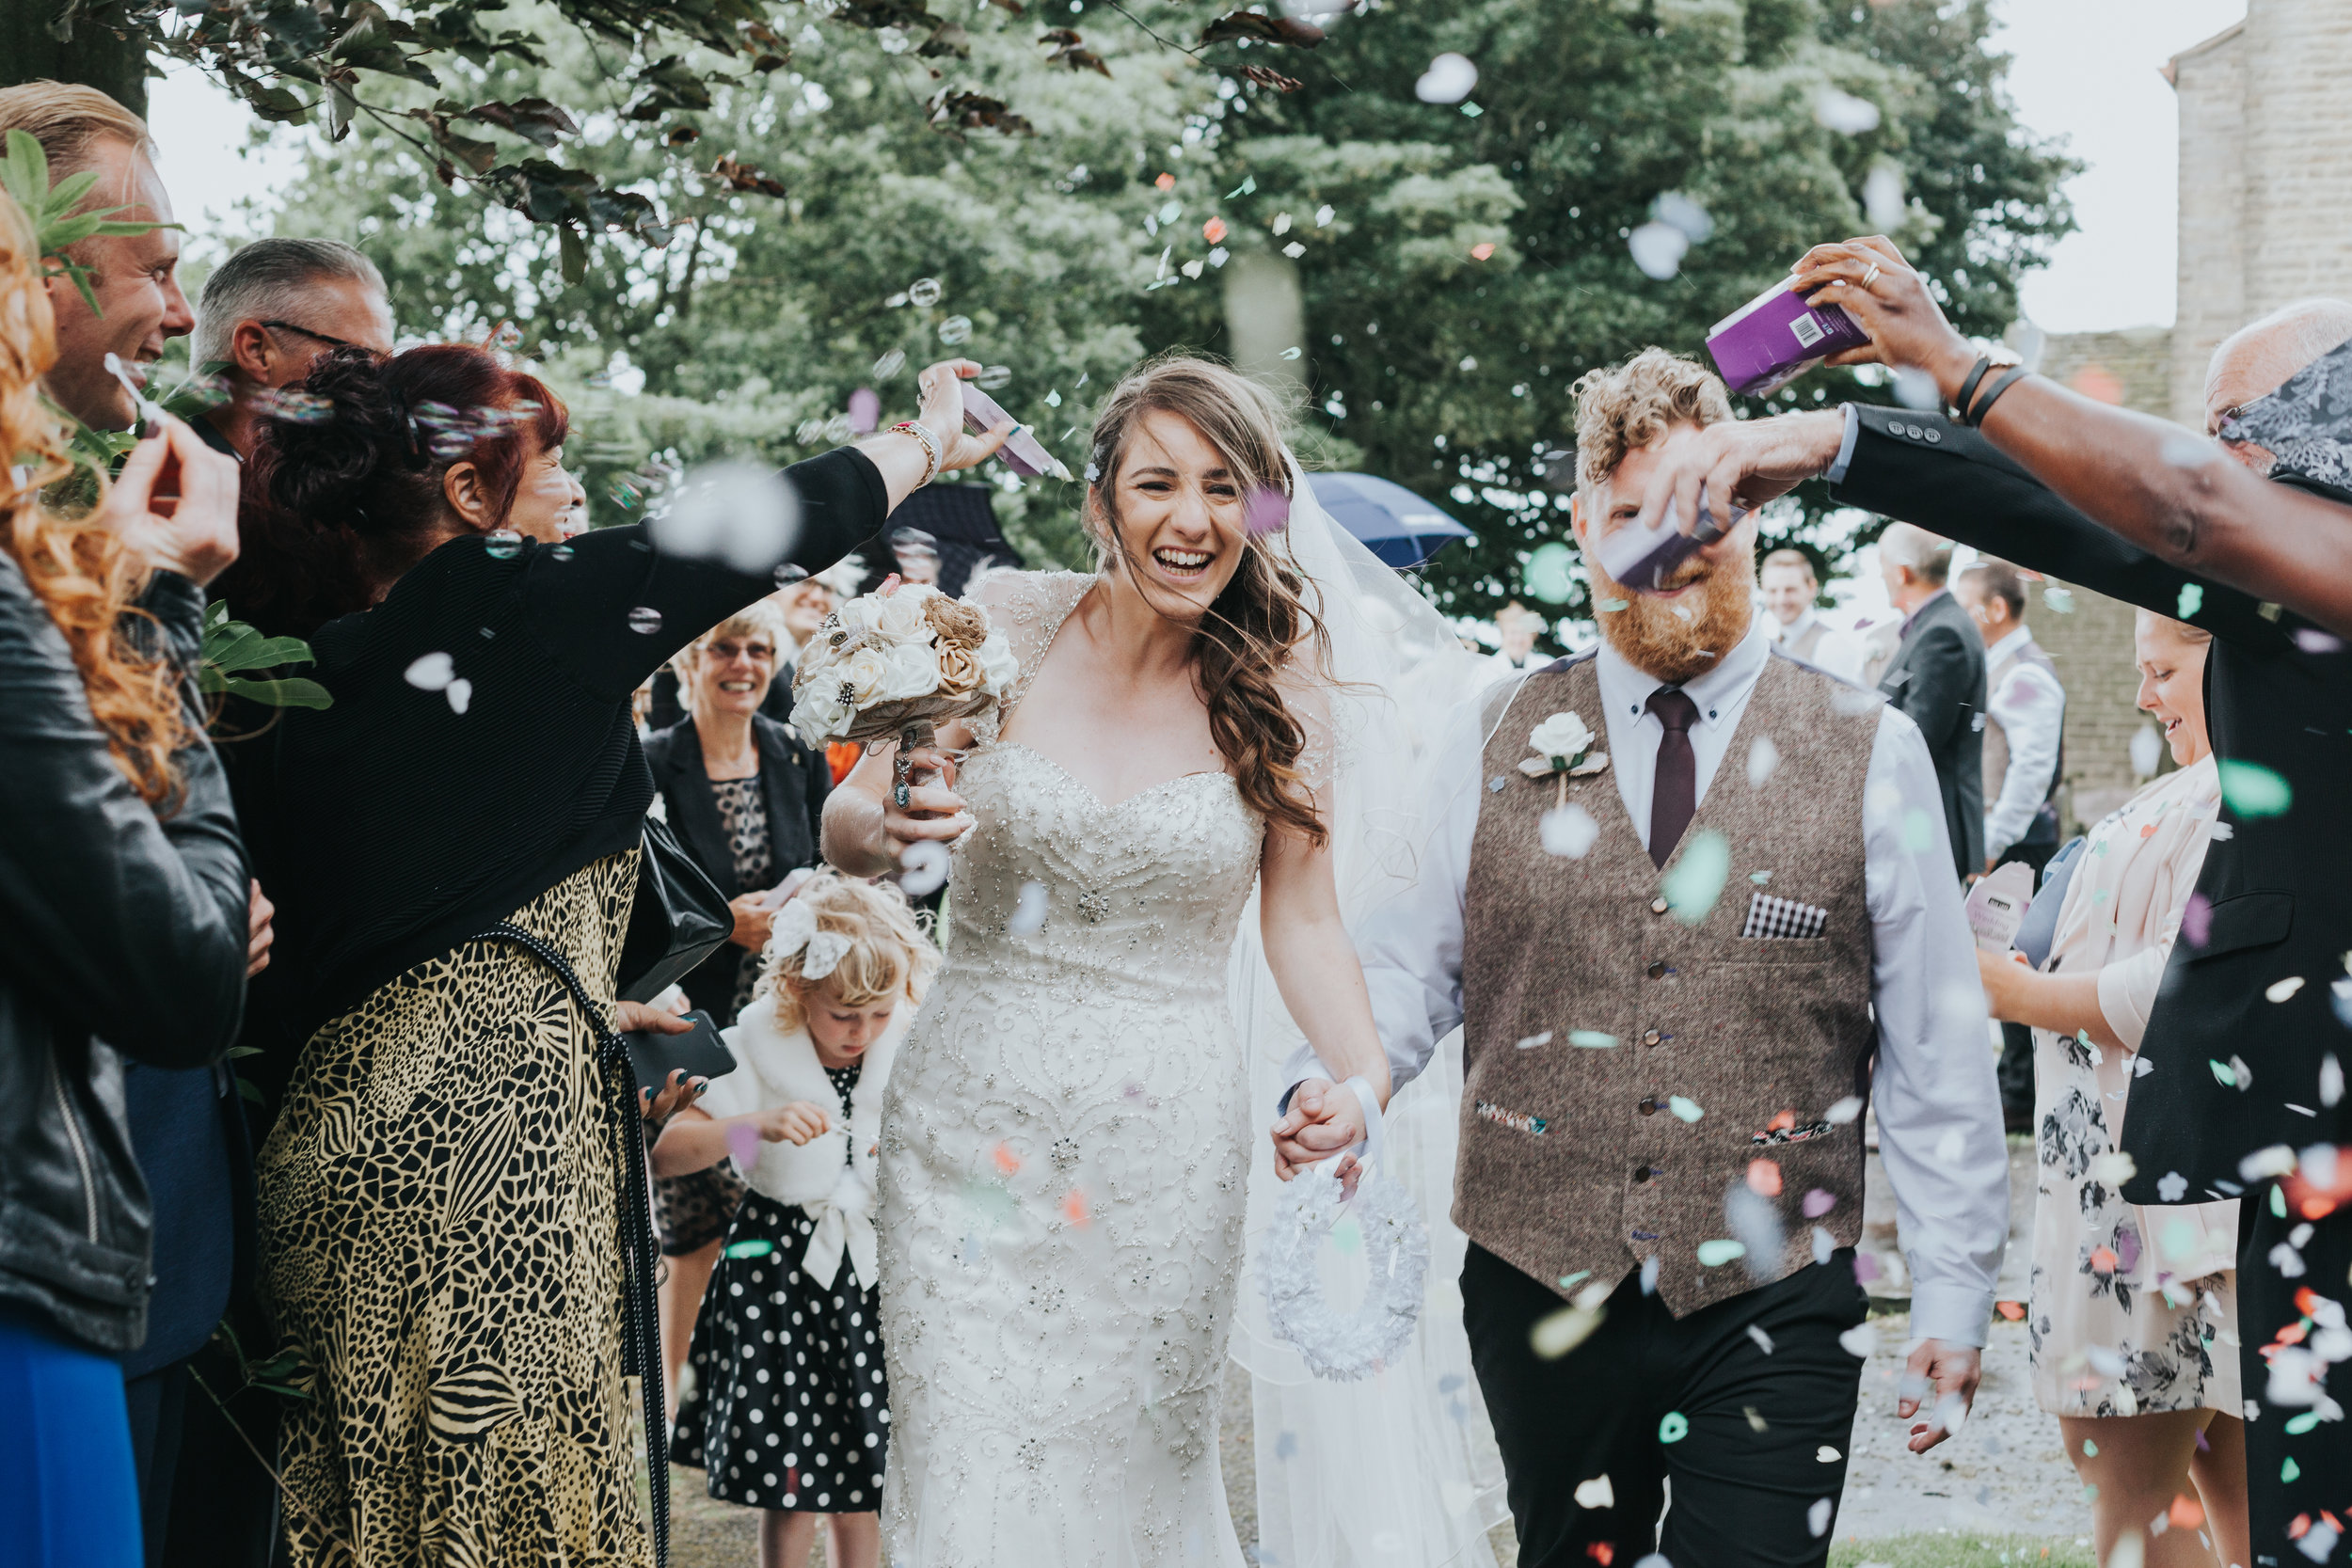 New Weds are attacked with confetti.